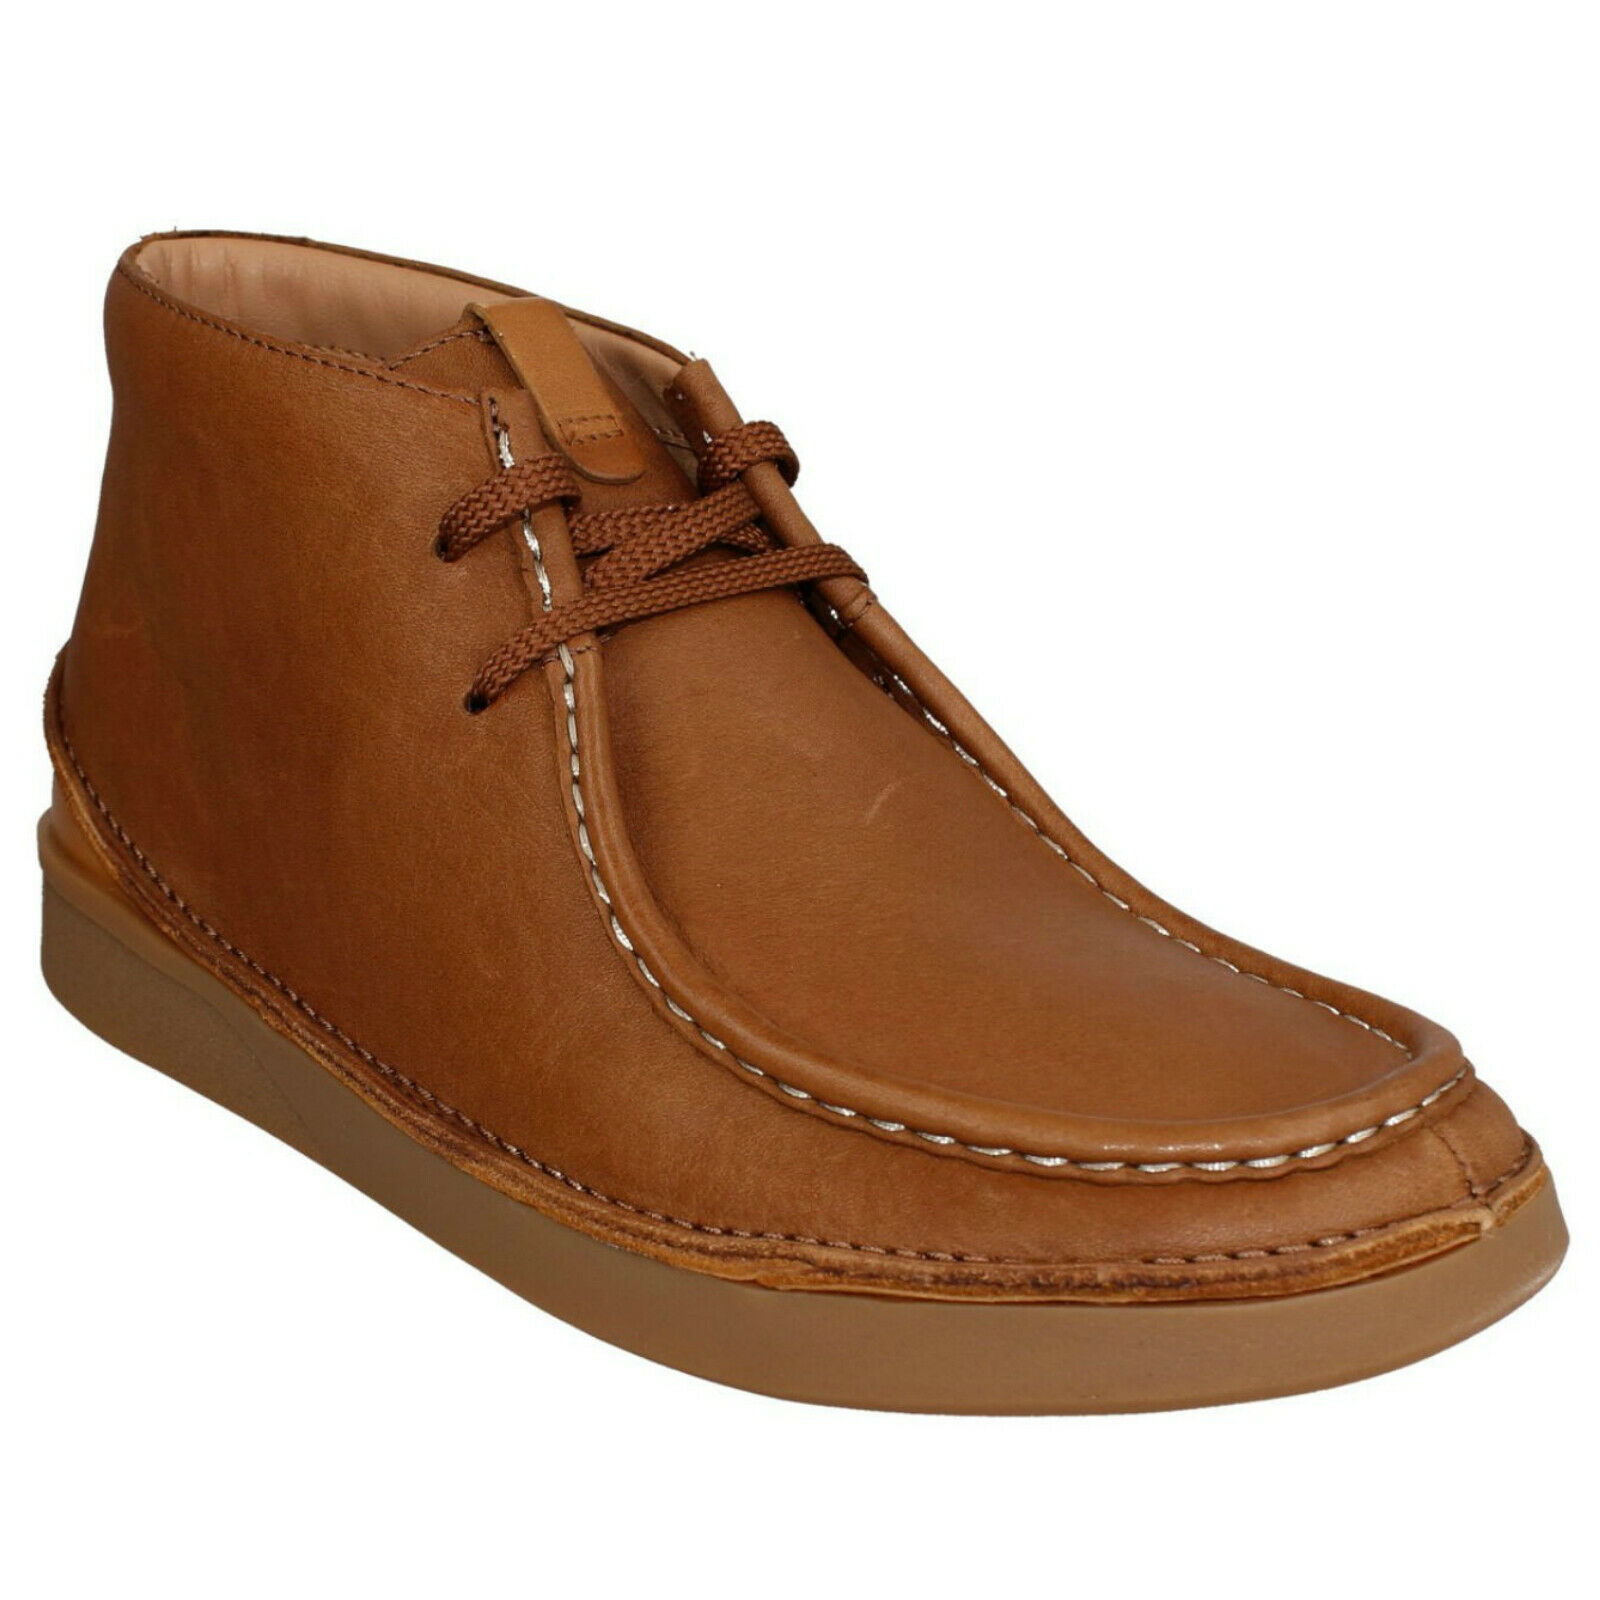 SALE MENS CLARKS OAKLAND MID LACE UP SMART WORK CASUAL CHUKKA ANKLE BOOTS SIZE